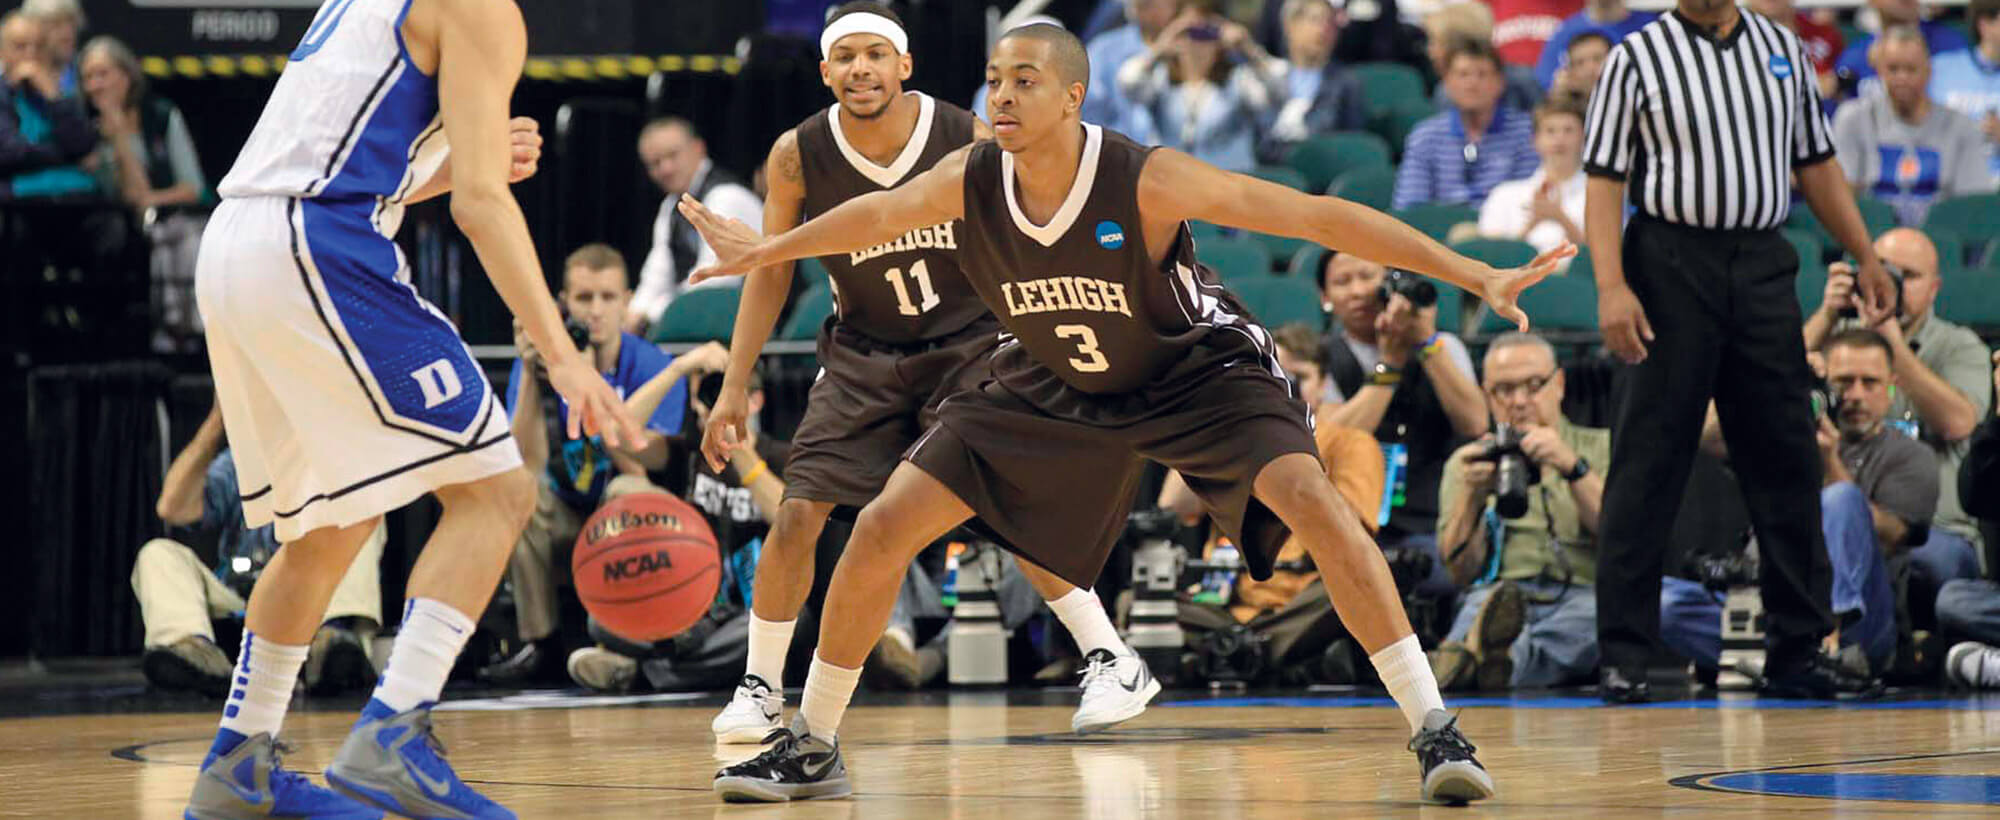 C.J. McCollum at a Lehigh basketball game